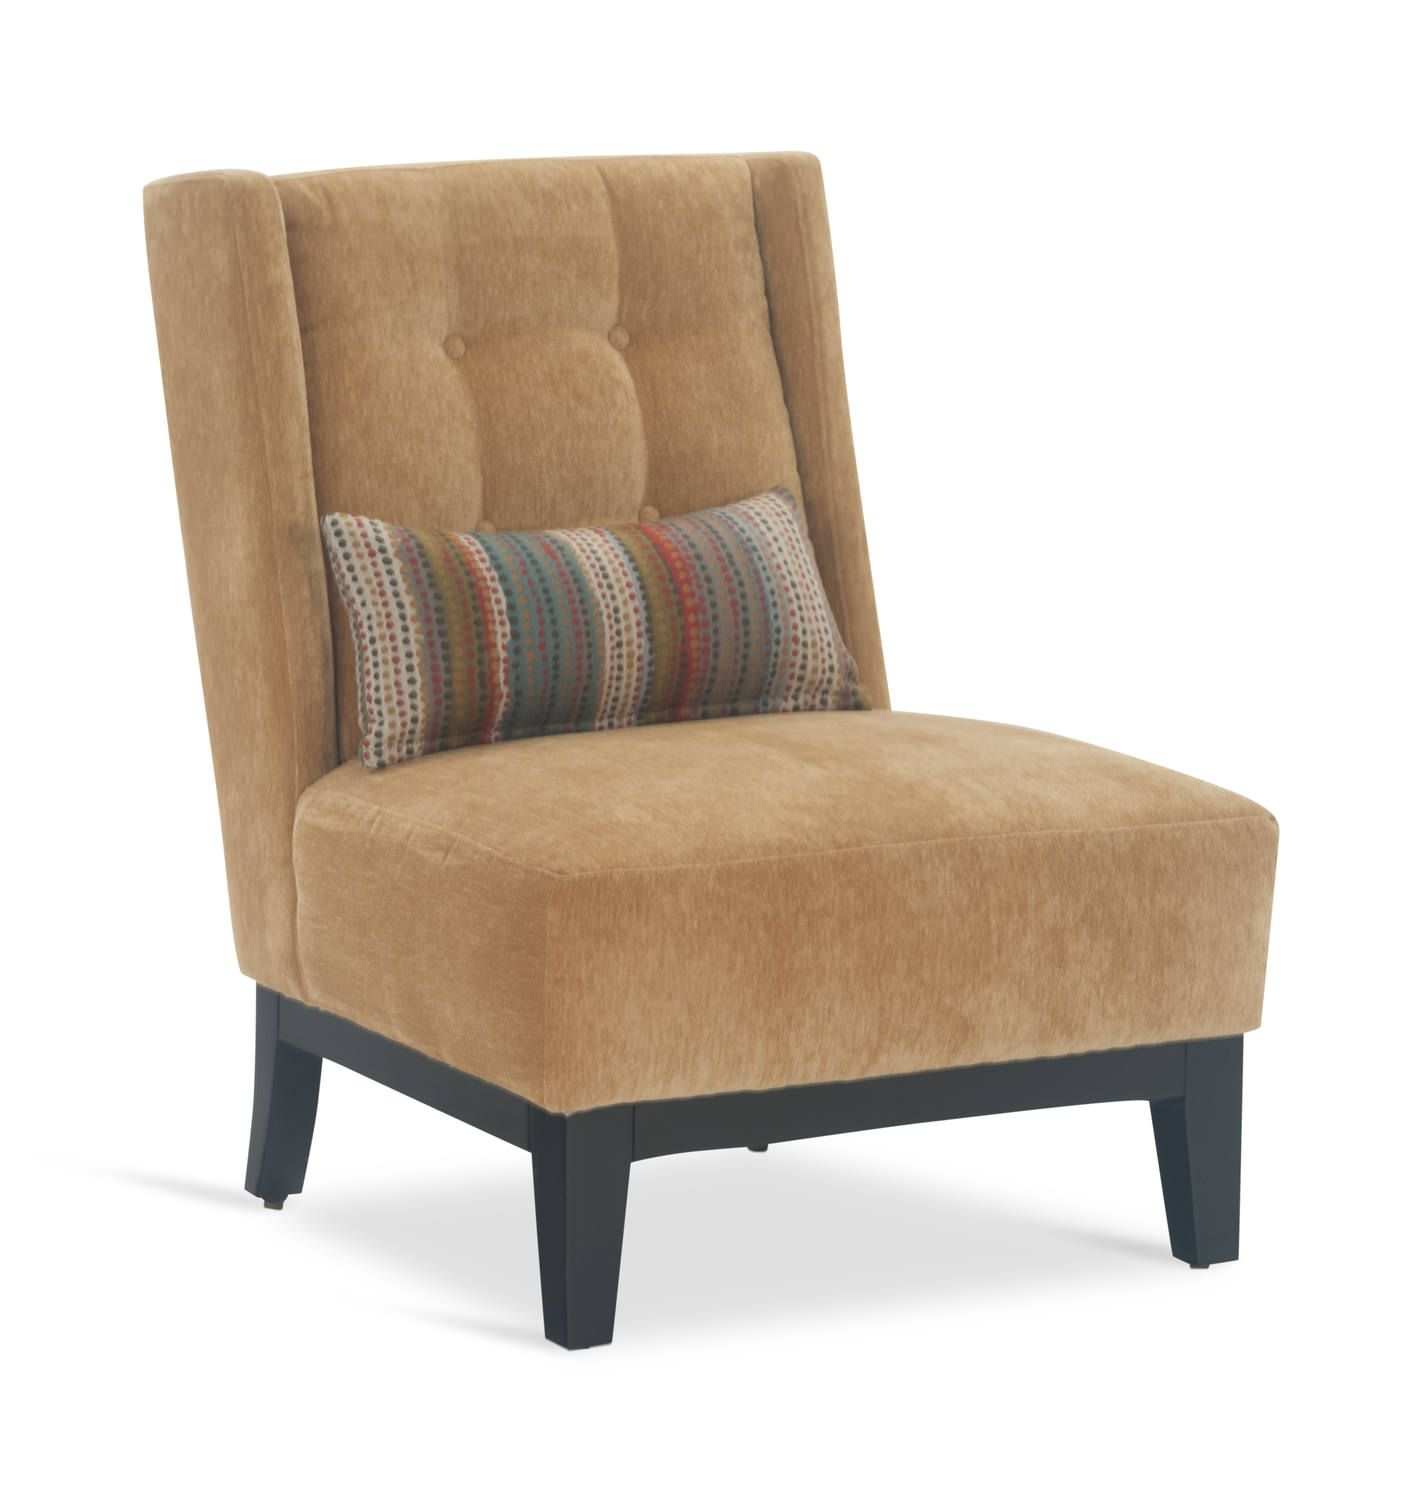 Strathmore Accent Chair Accent Chairs Hom Furniture Chair